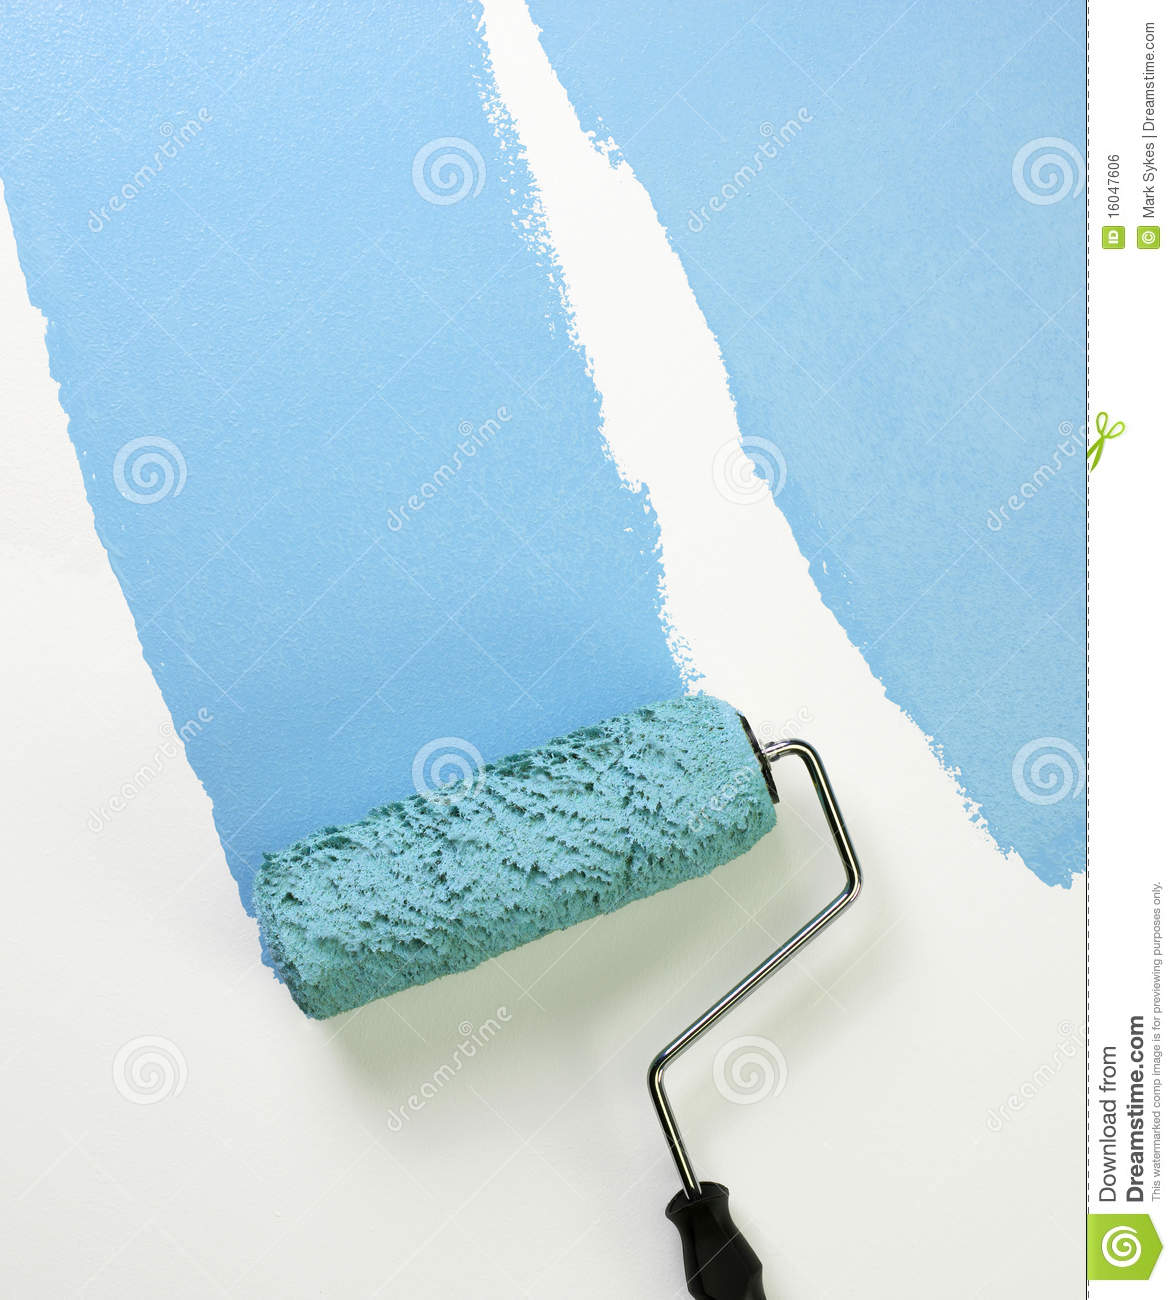 Paint Roller Applying Blue Paint Royalty Free Stock Image